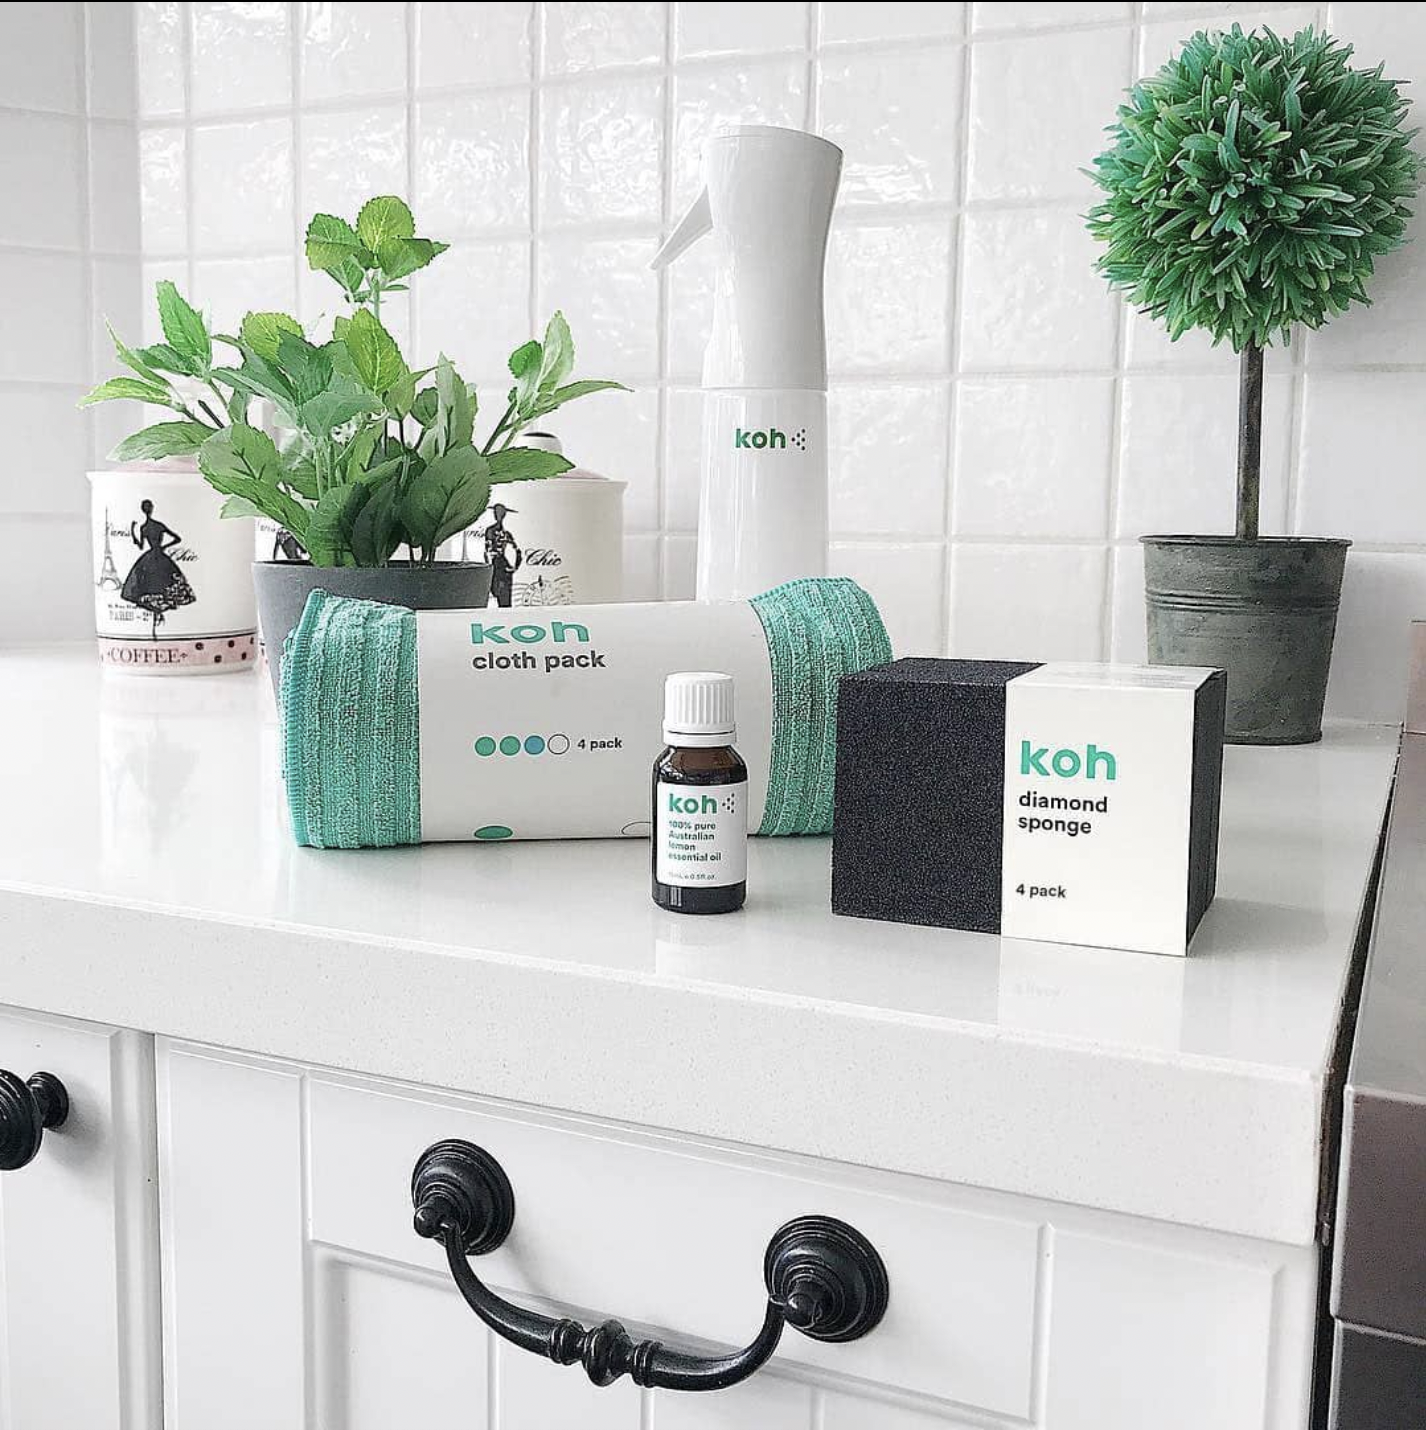 a bathroom counter with various cleaning supplies on it with plants in the background